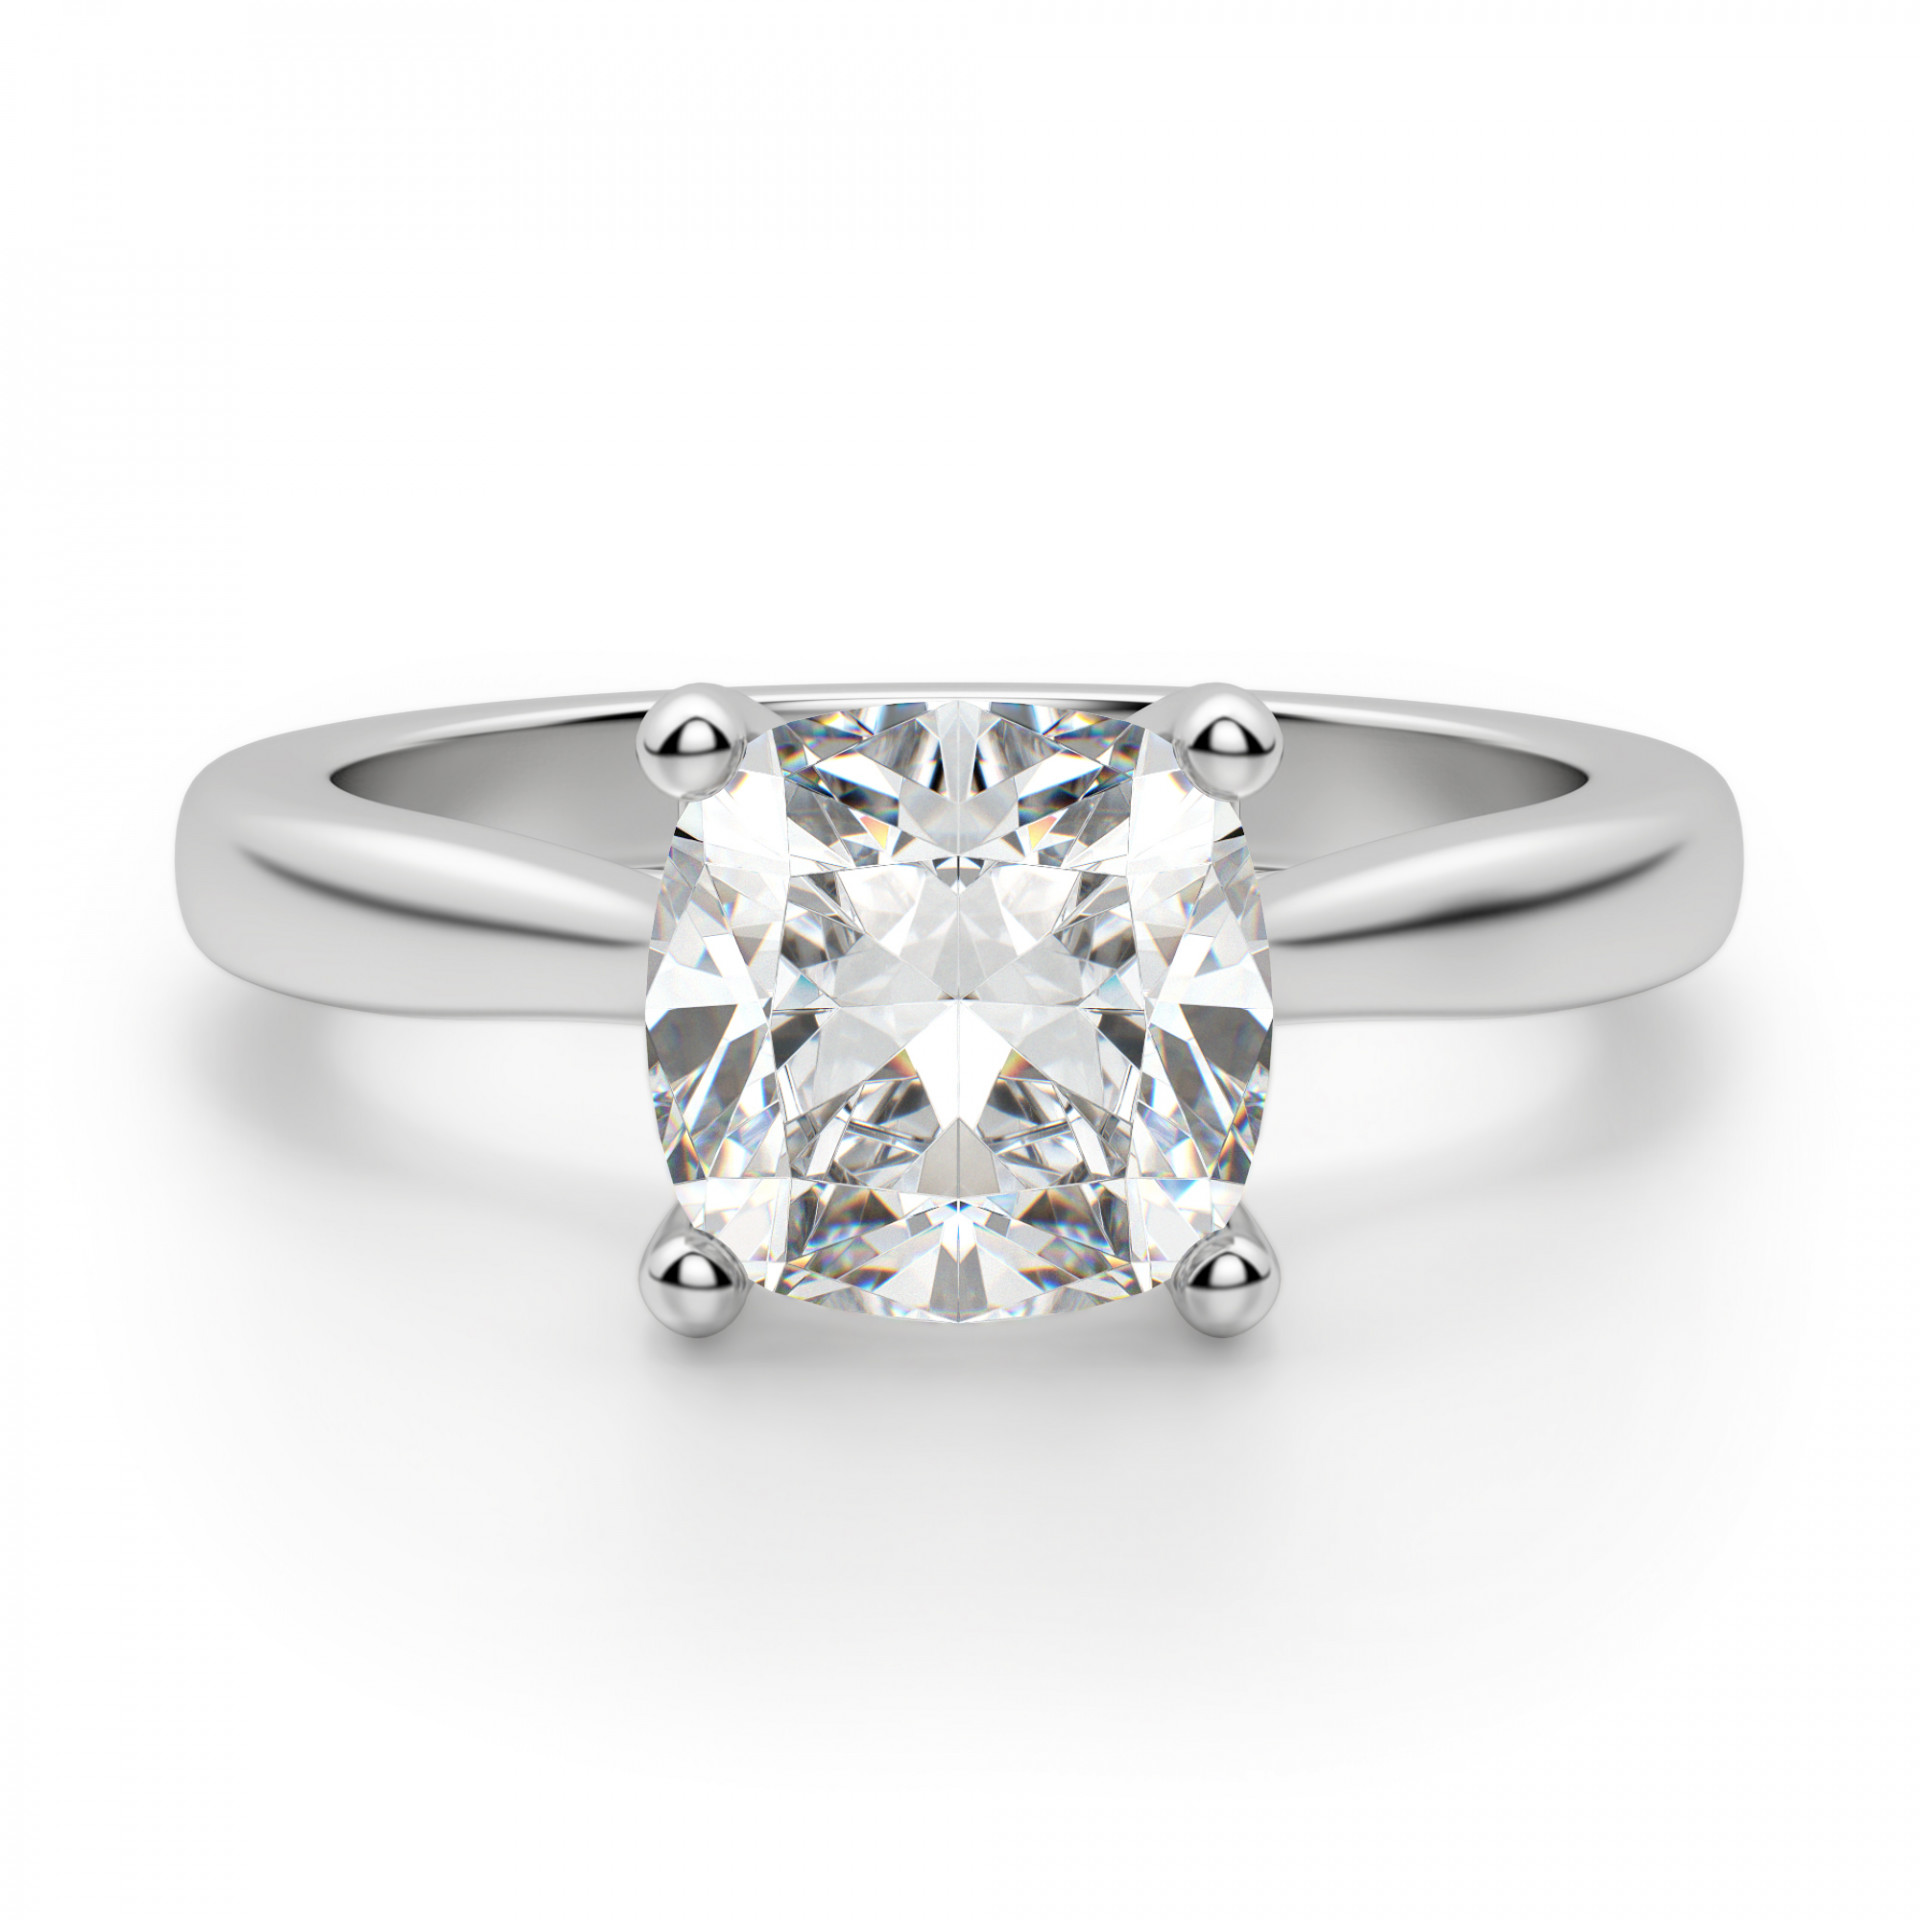 montreal cushion cut engagement ring. Black Bedroom Furniture Sets. Home Design Ideas